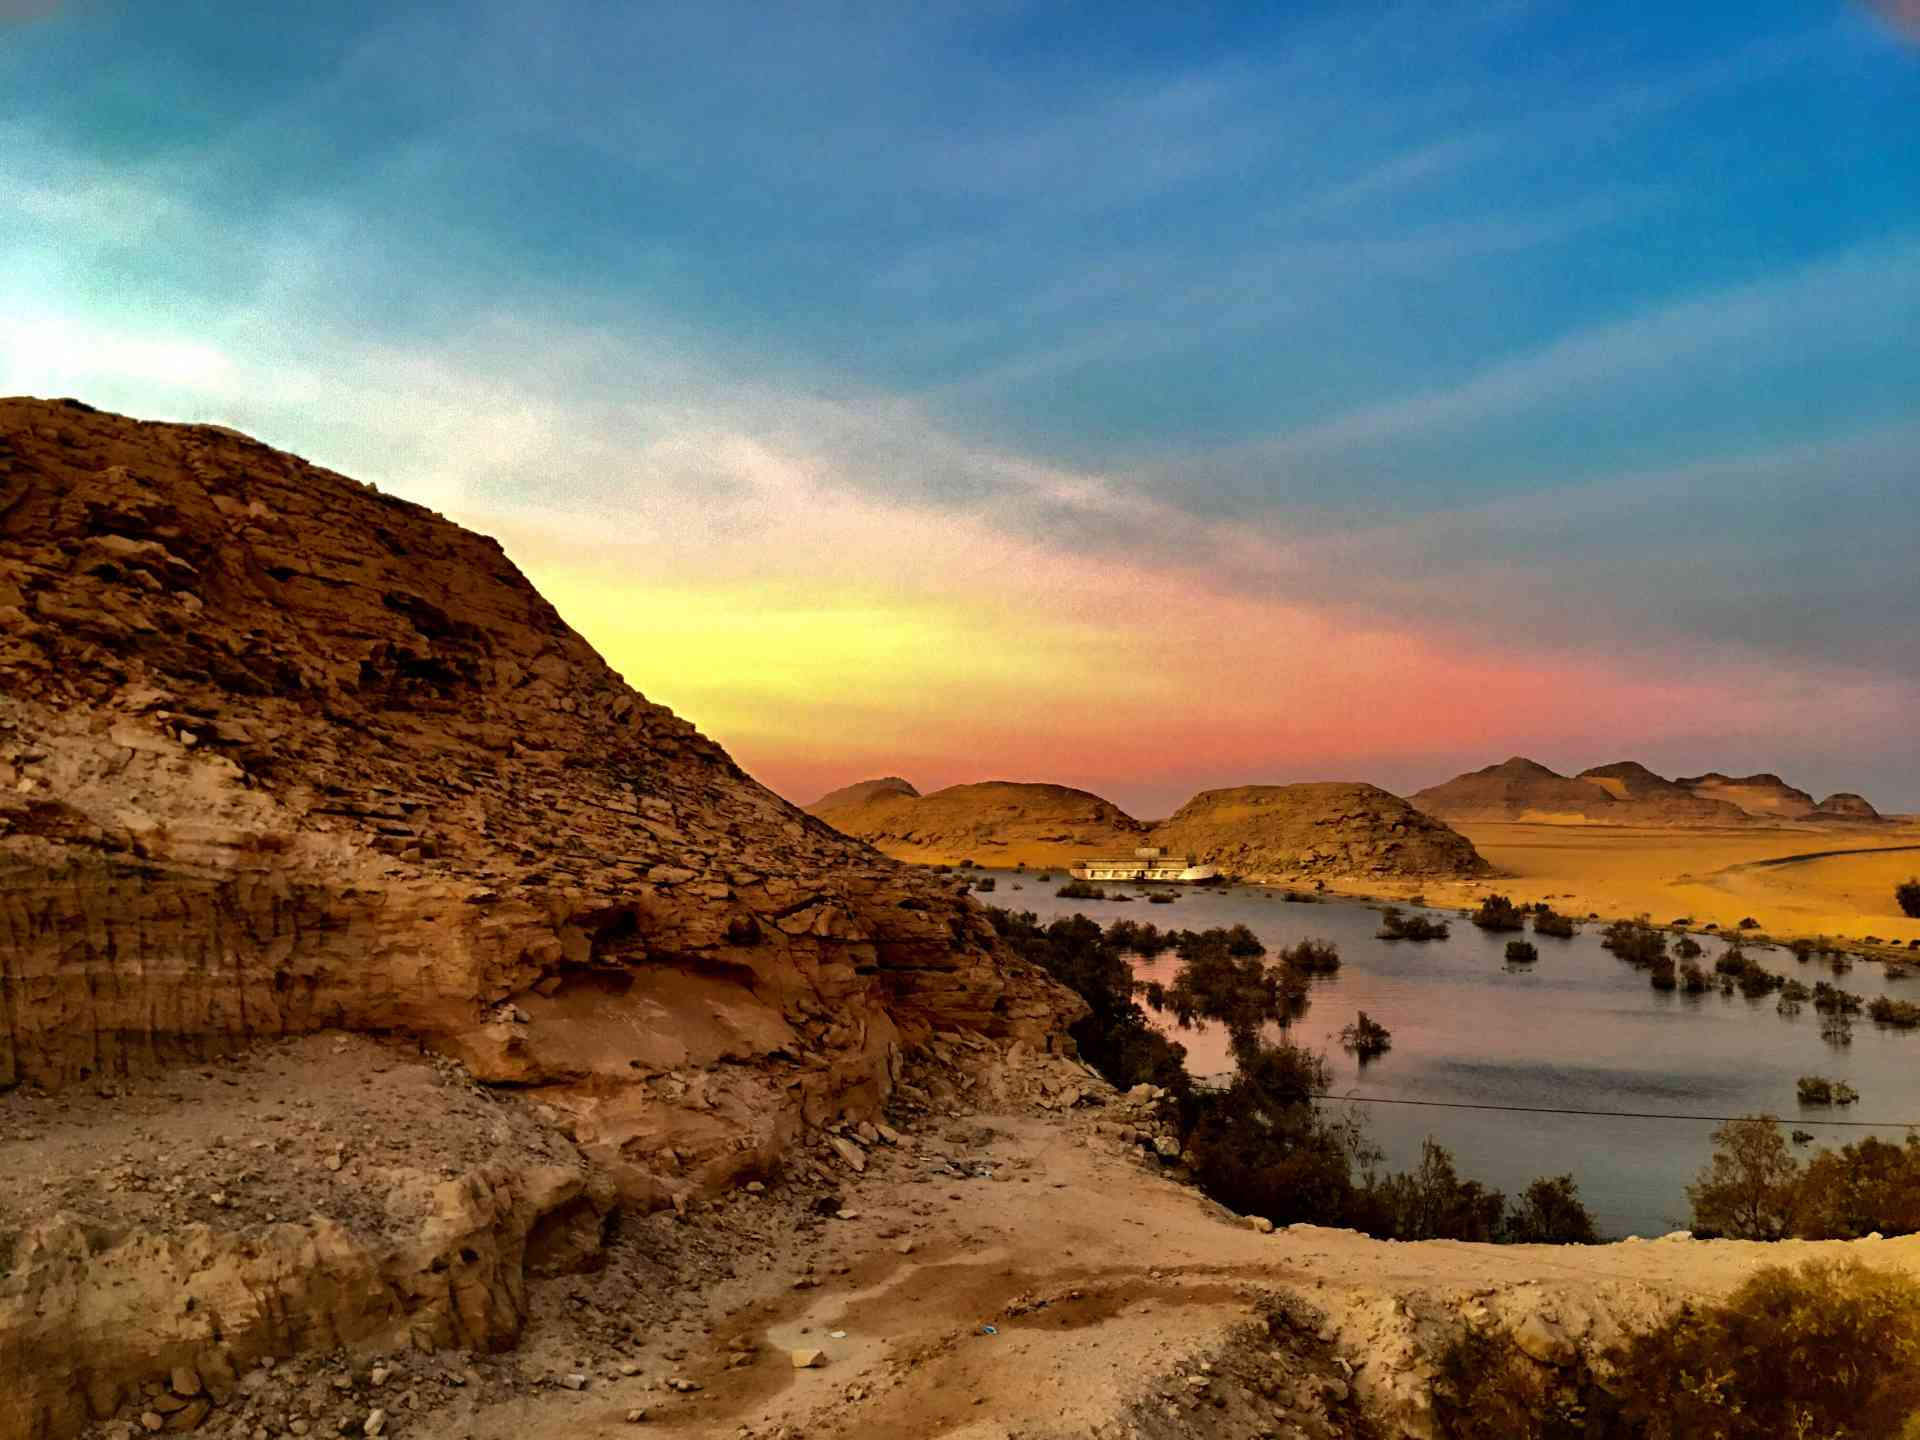 Congratulations to our February 2019 winner Helene H for this incredible shot at Lake Nasser in Egypt.